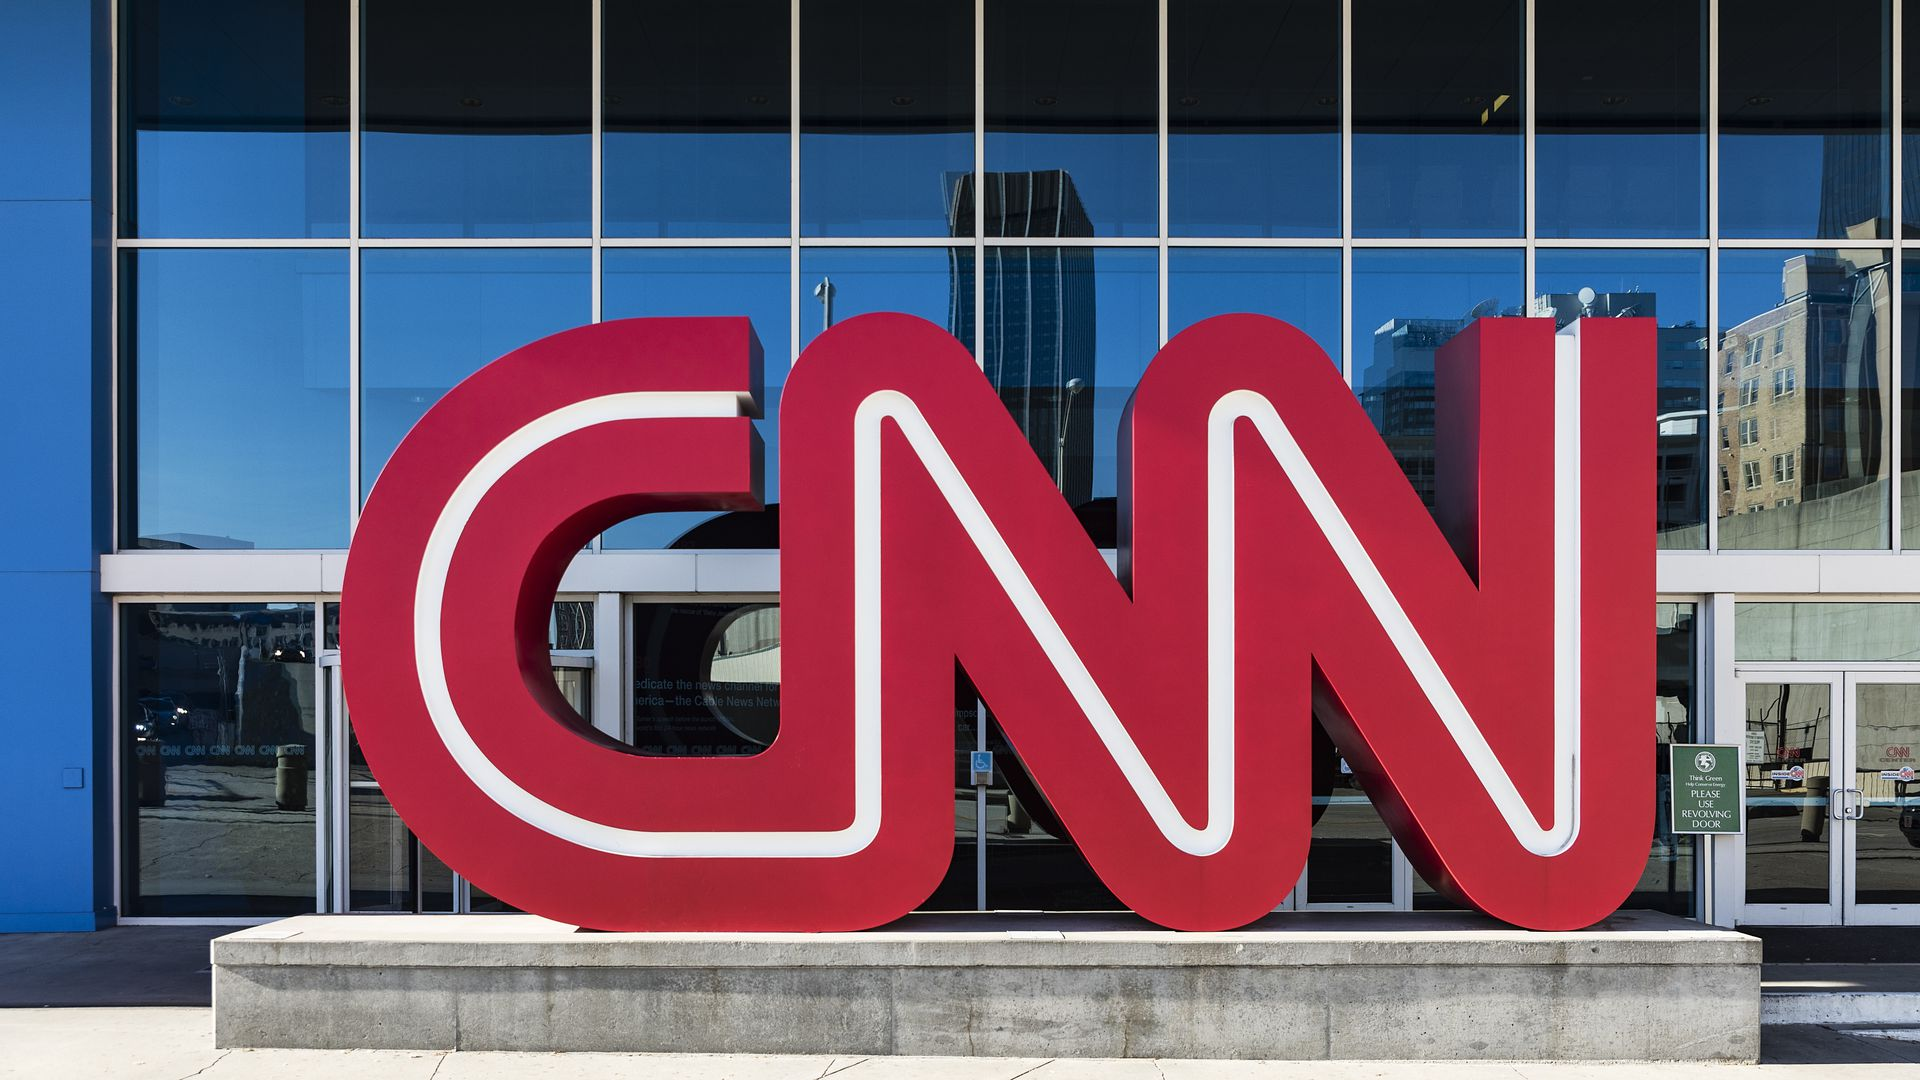 Cnn Headquarters